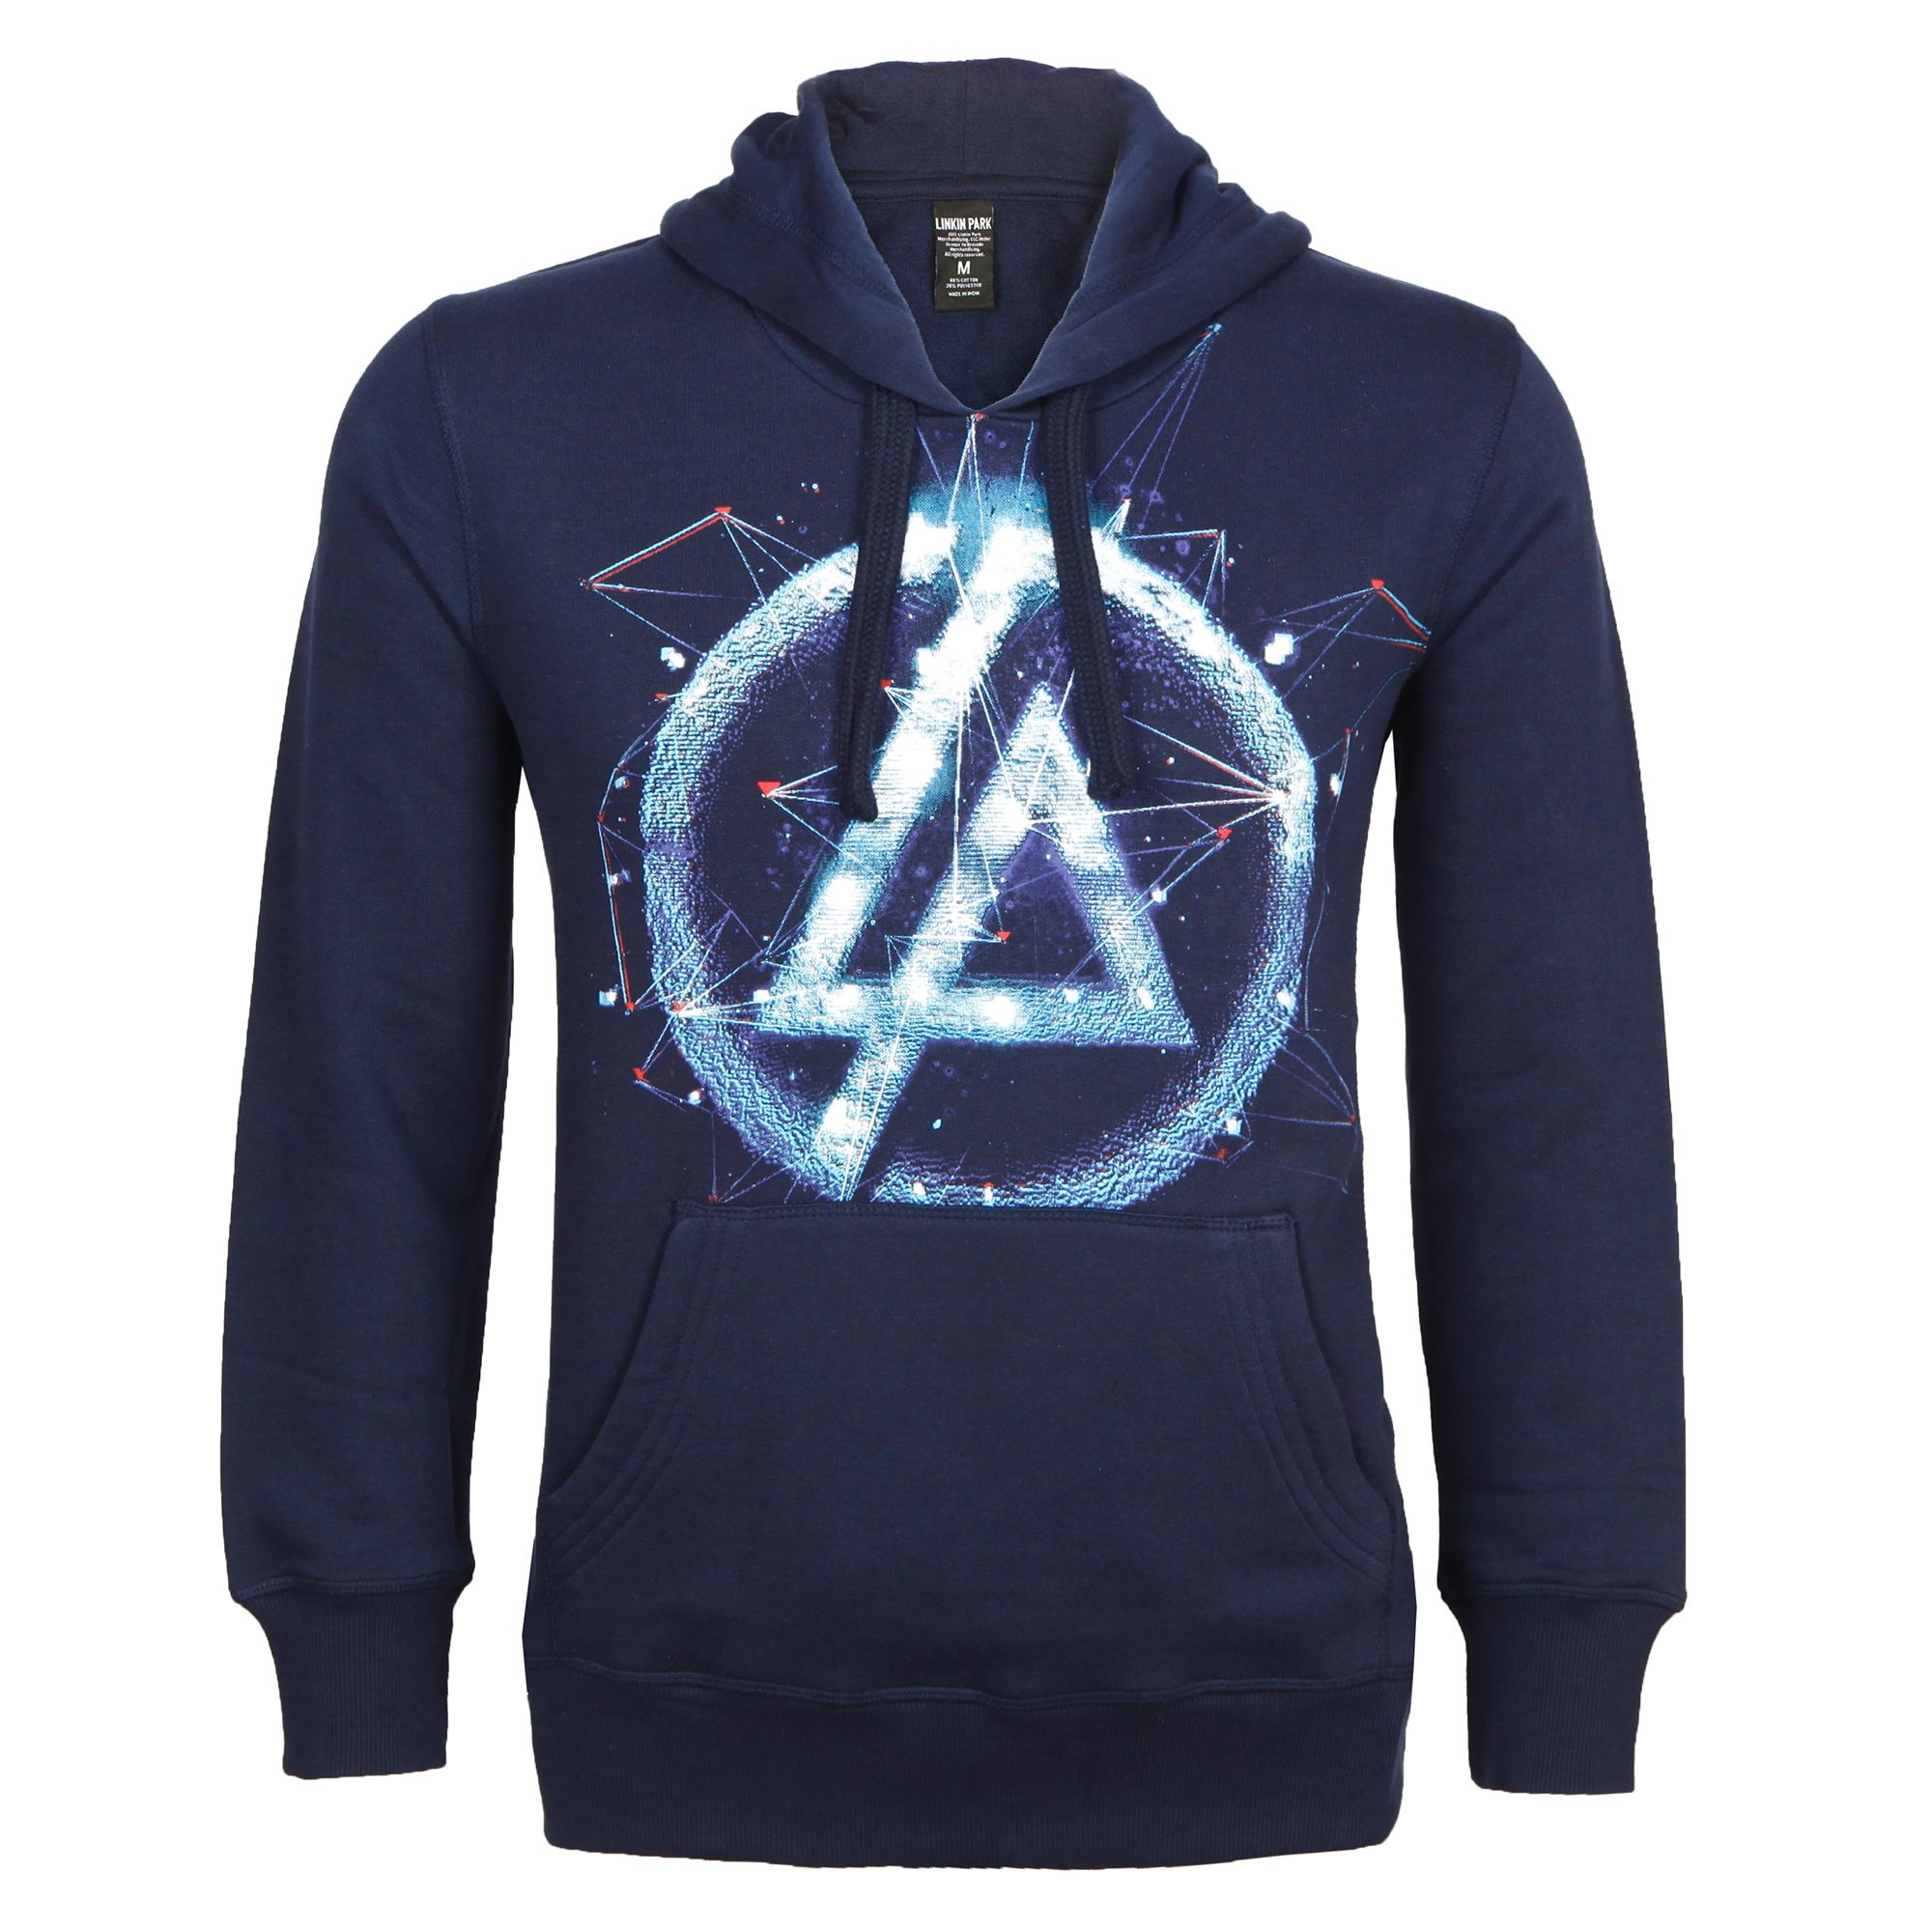 official linkin park constellation logo hoodie music. Black Bedroom Furniture Sets. Home Design Ideas